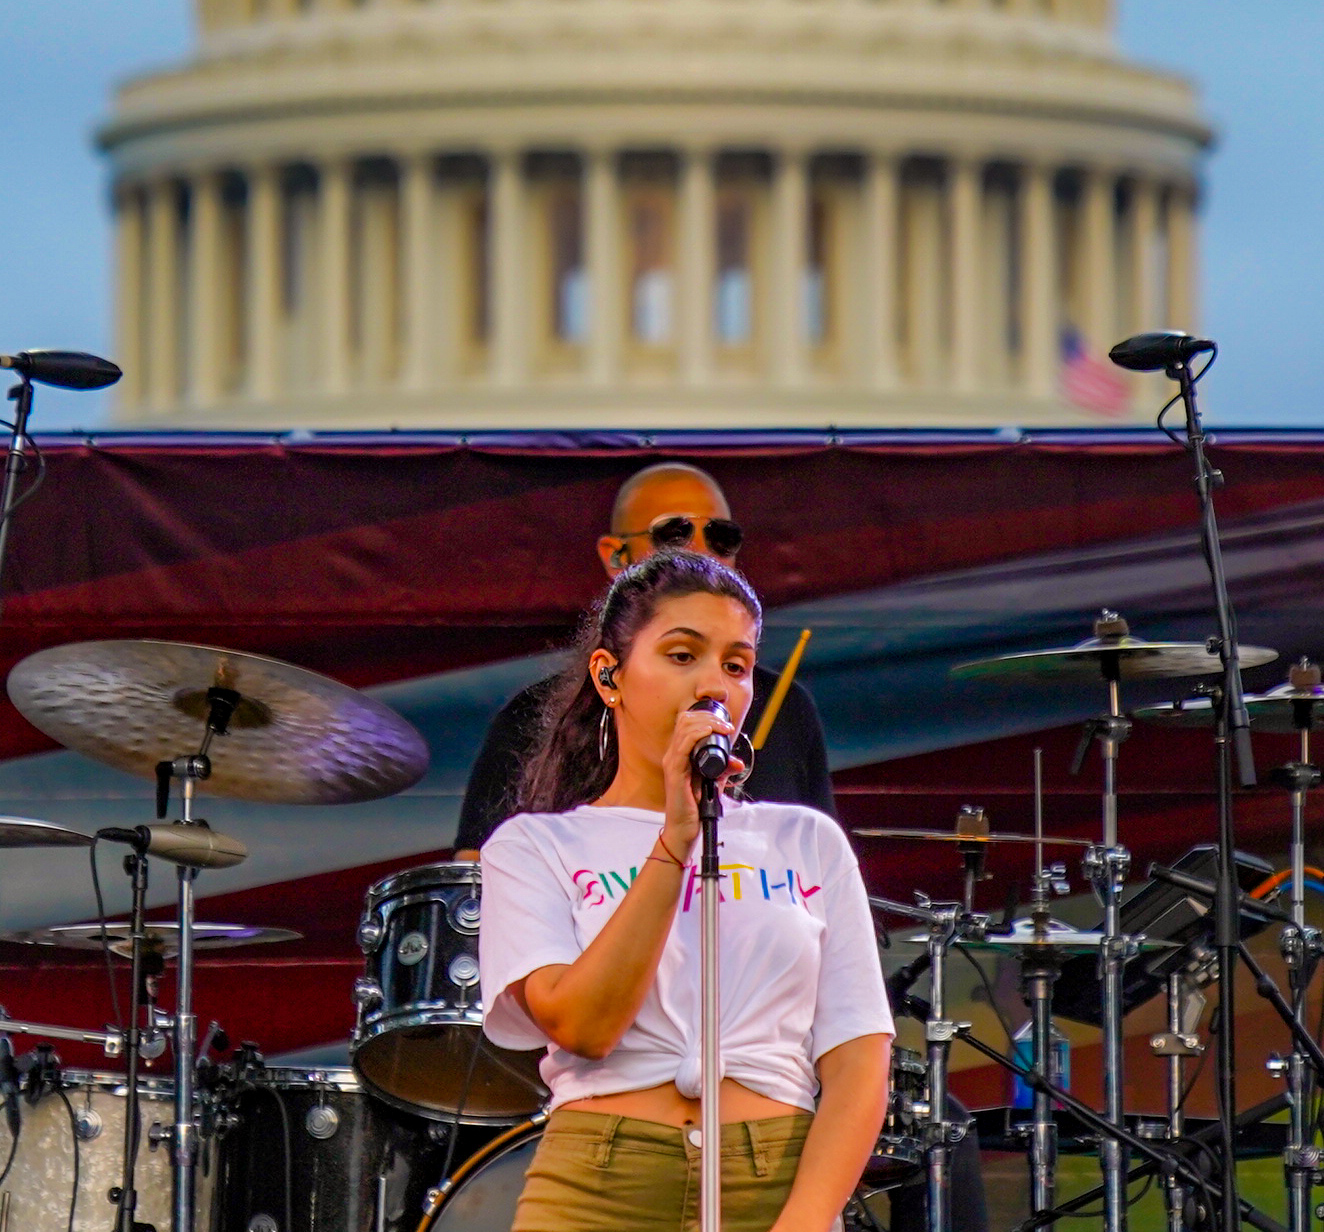 More Photos from the Future: Alessia Cara at Capital Pride, Washington, DC USA